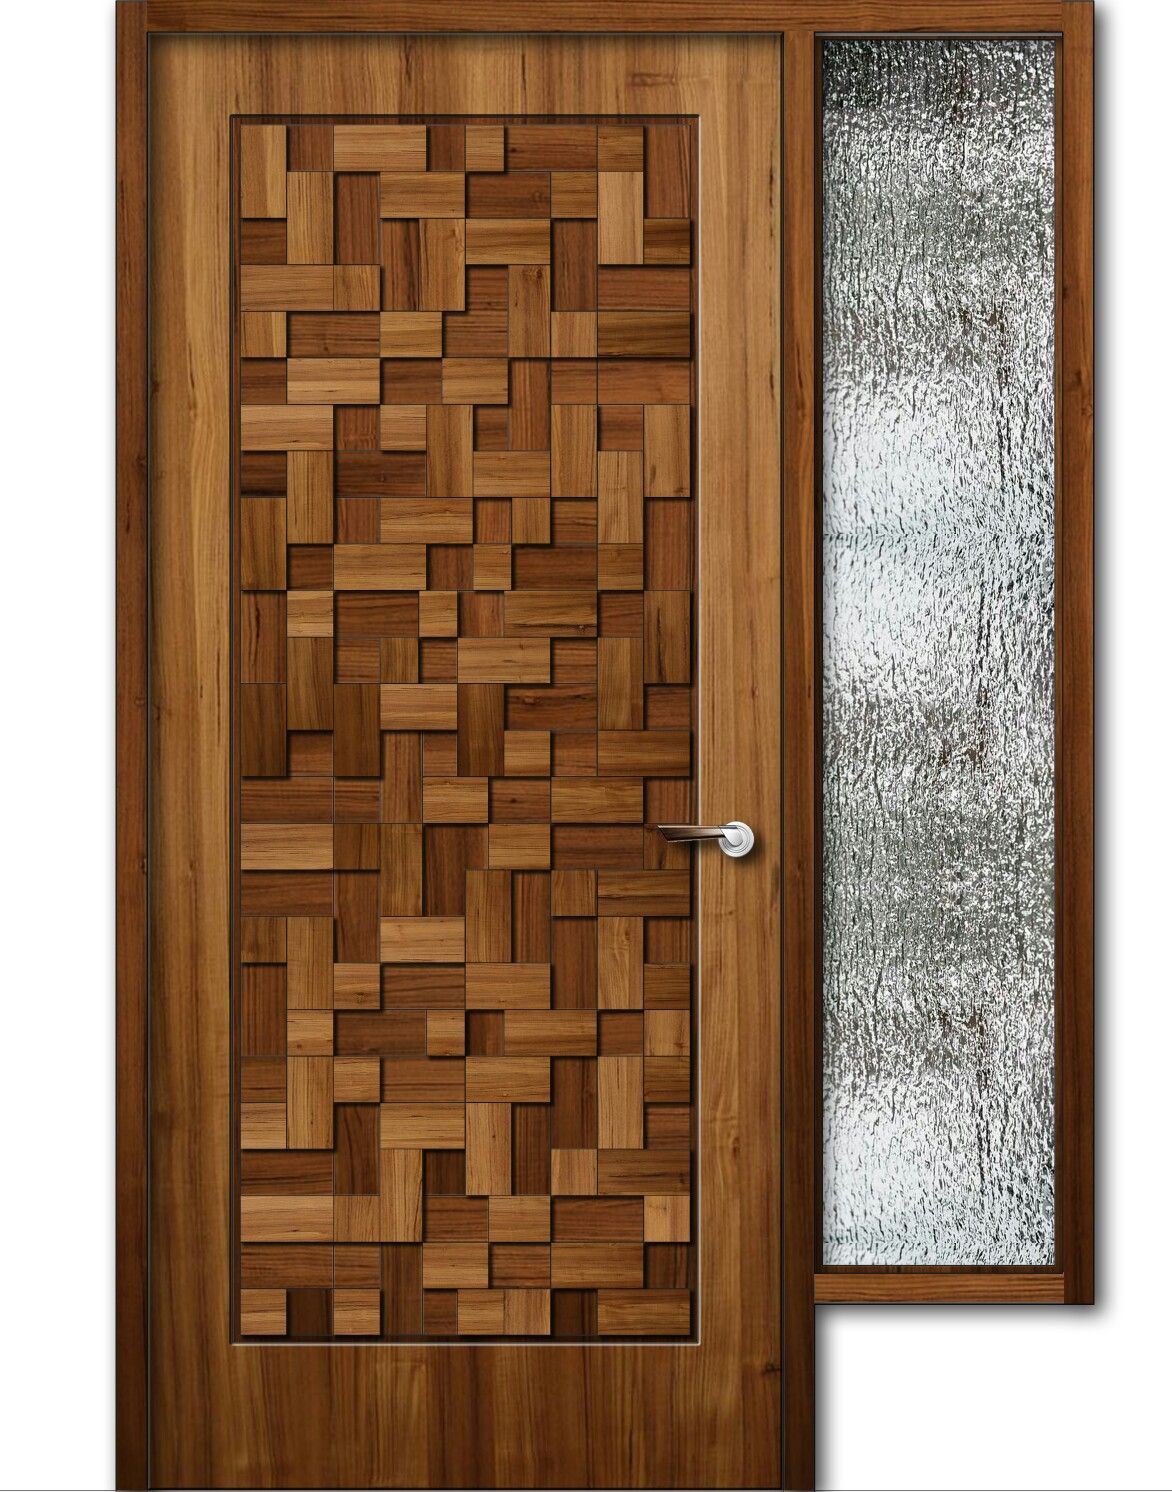 Teak wood finish wooden door with window 8feet height for Decorative main door designs